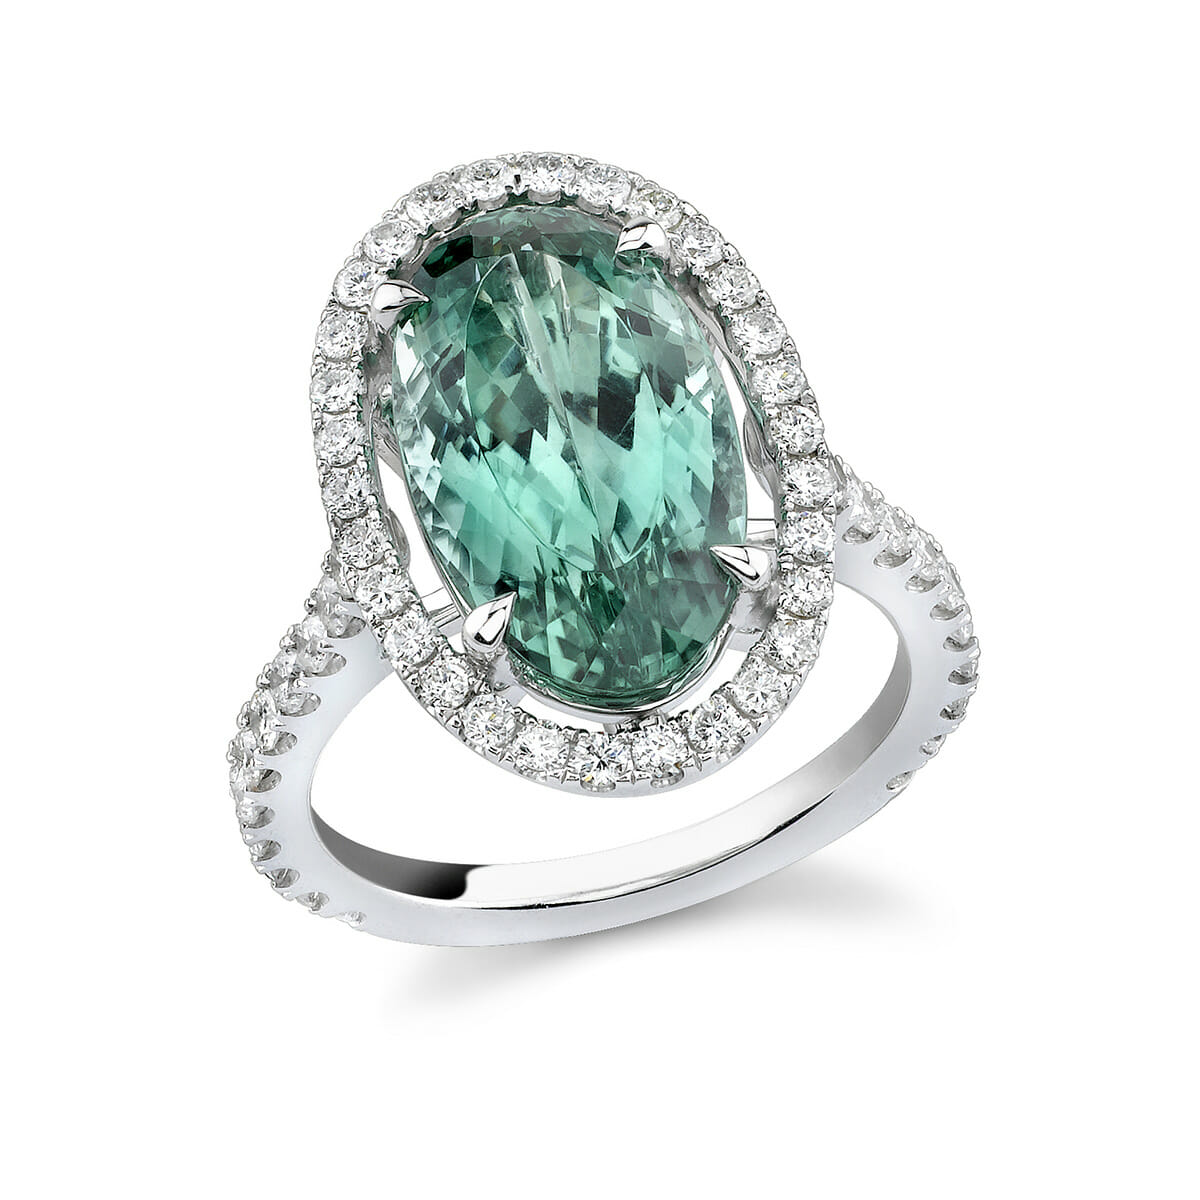 green engagement tourmaline and rings models jewelry ring stl diamond model print